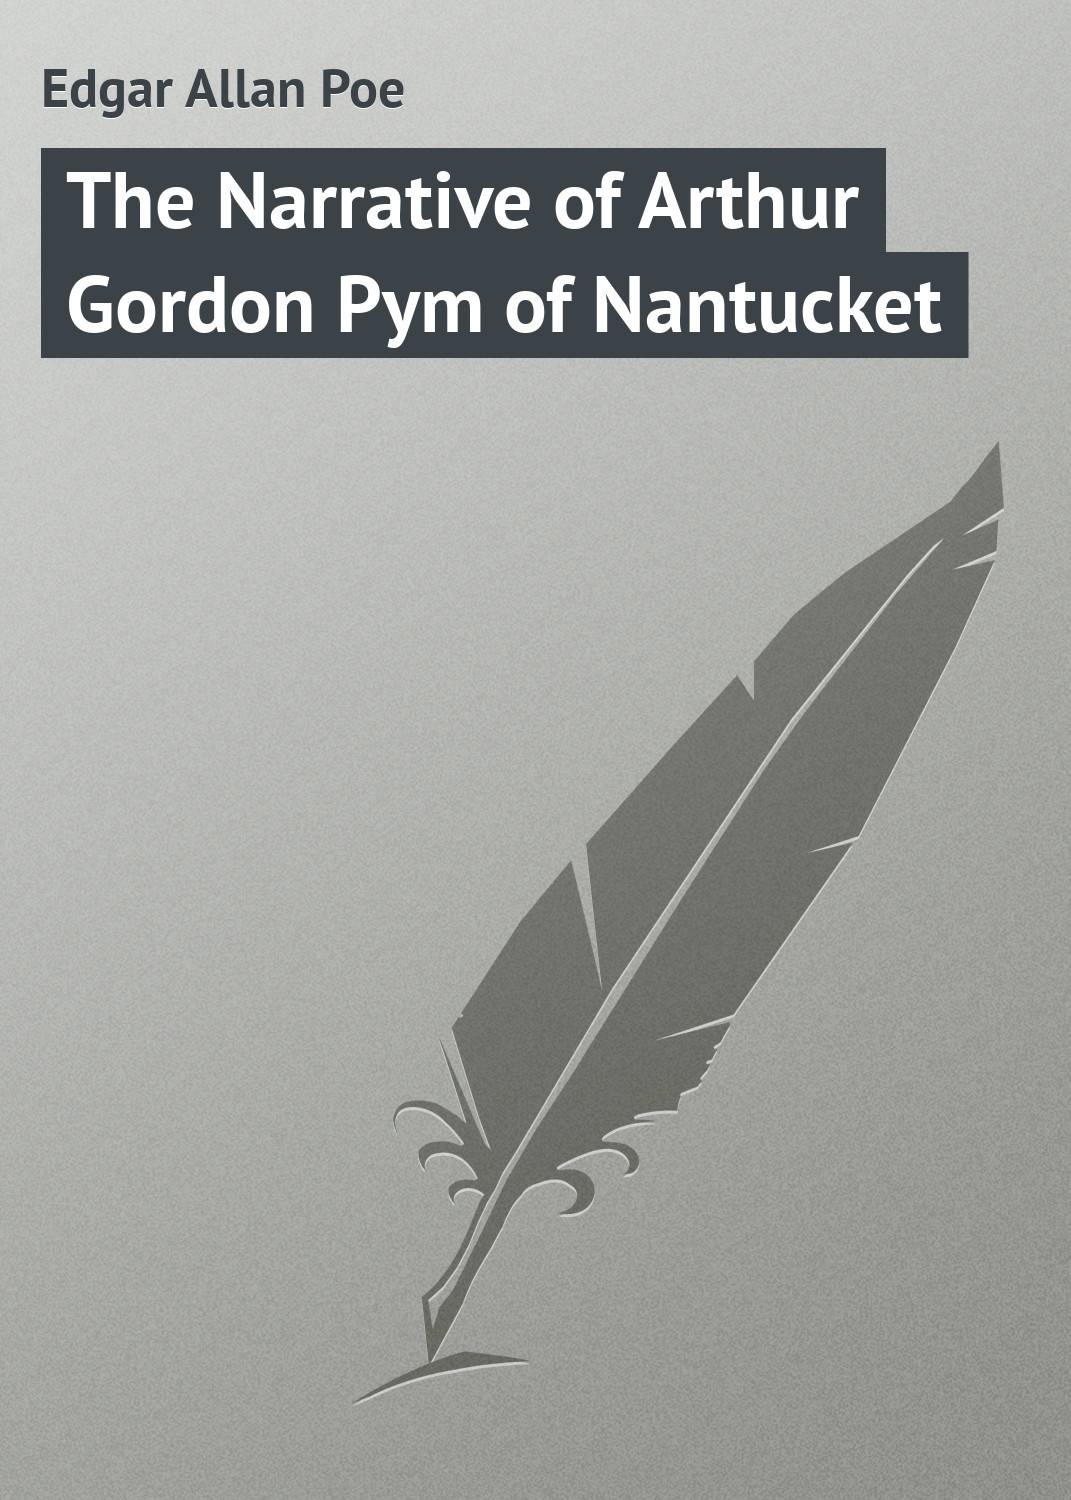 цены Эдгар Аллан По The Narrative of Arthur Gordon Pym of Nantucket